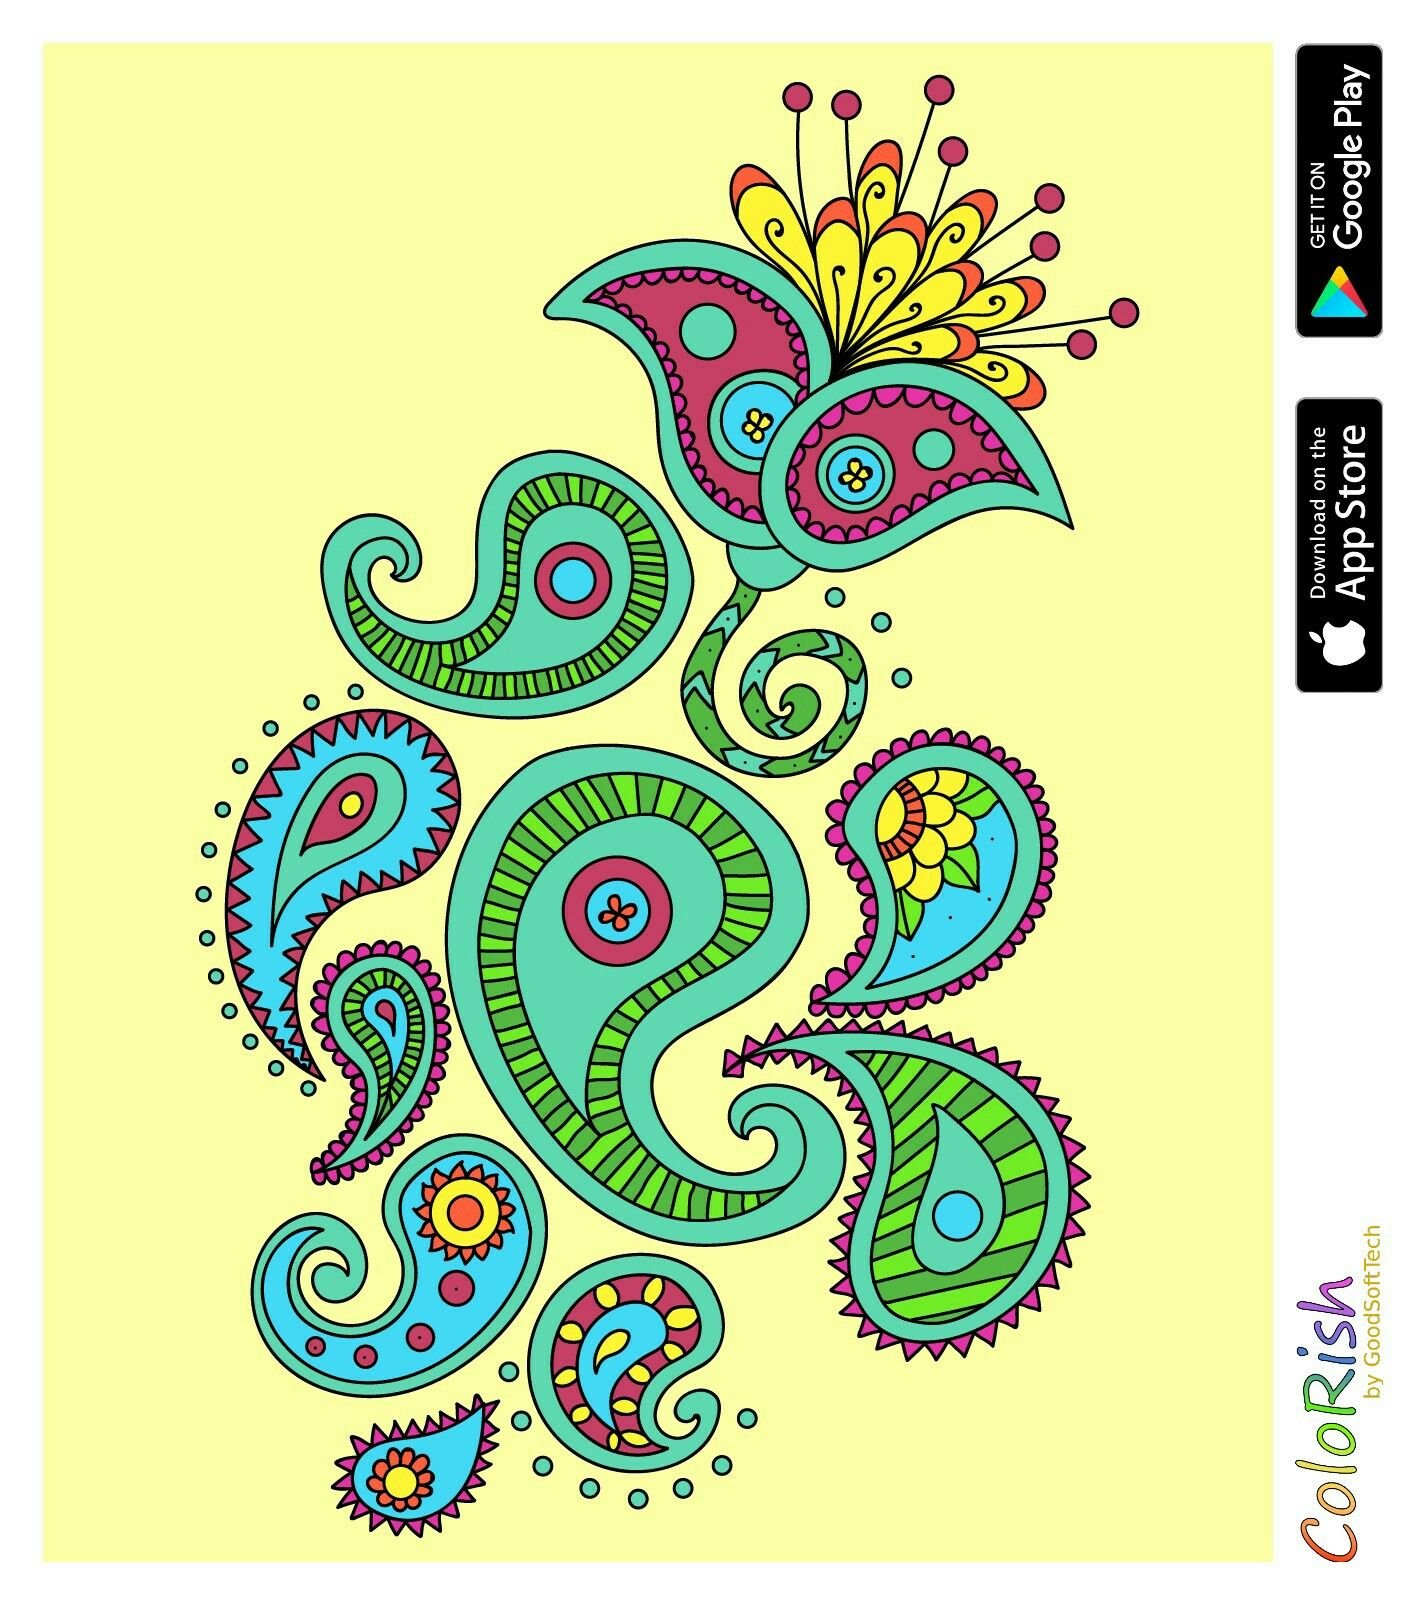 Pin by April Hanson on Coloring pages, | Pinterest